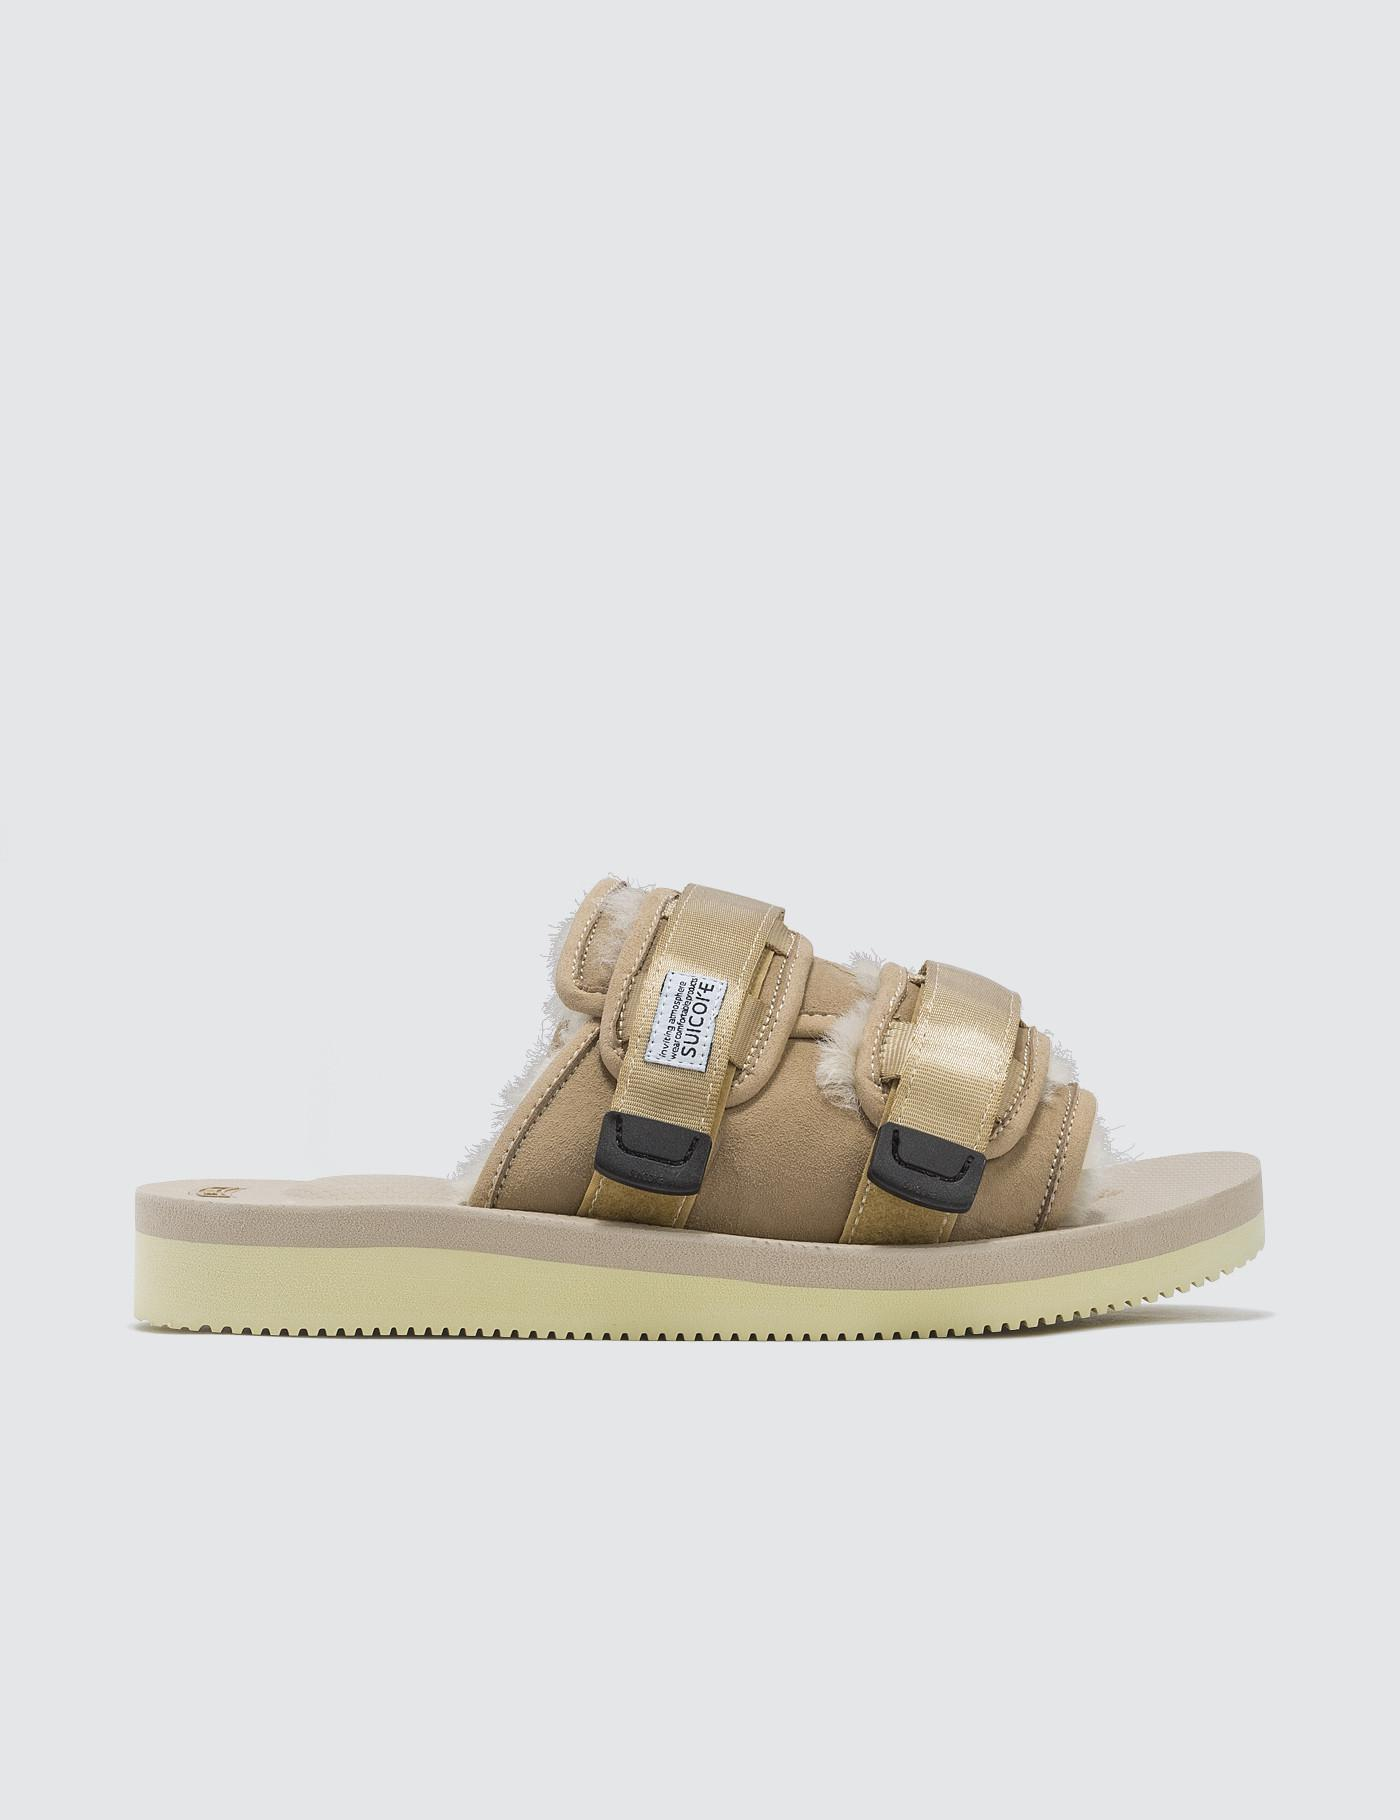 b0d7912b112 Lyst - Suicoke Moto-vm2 Sandals in Natural for Men